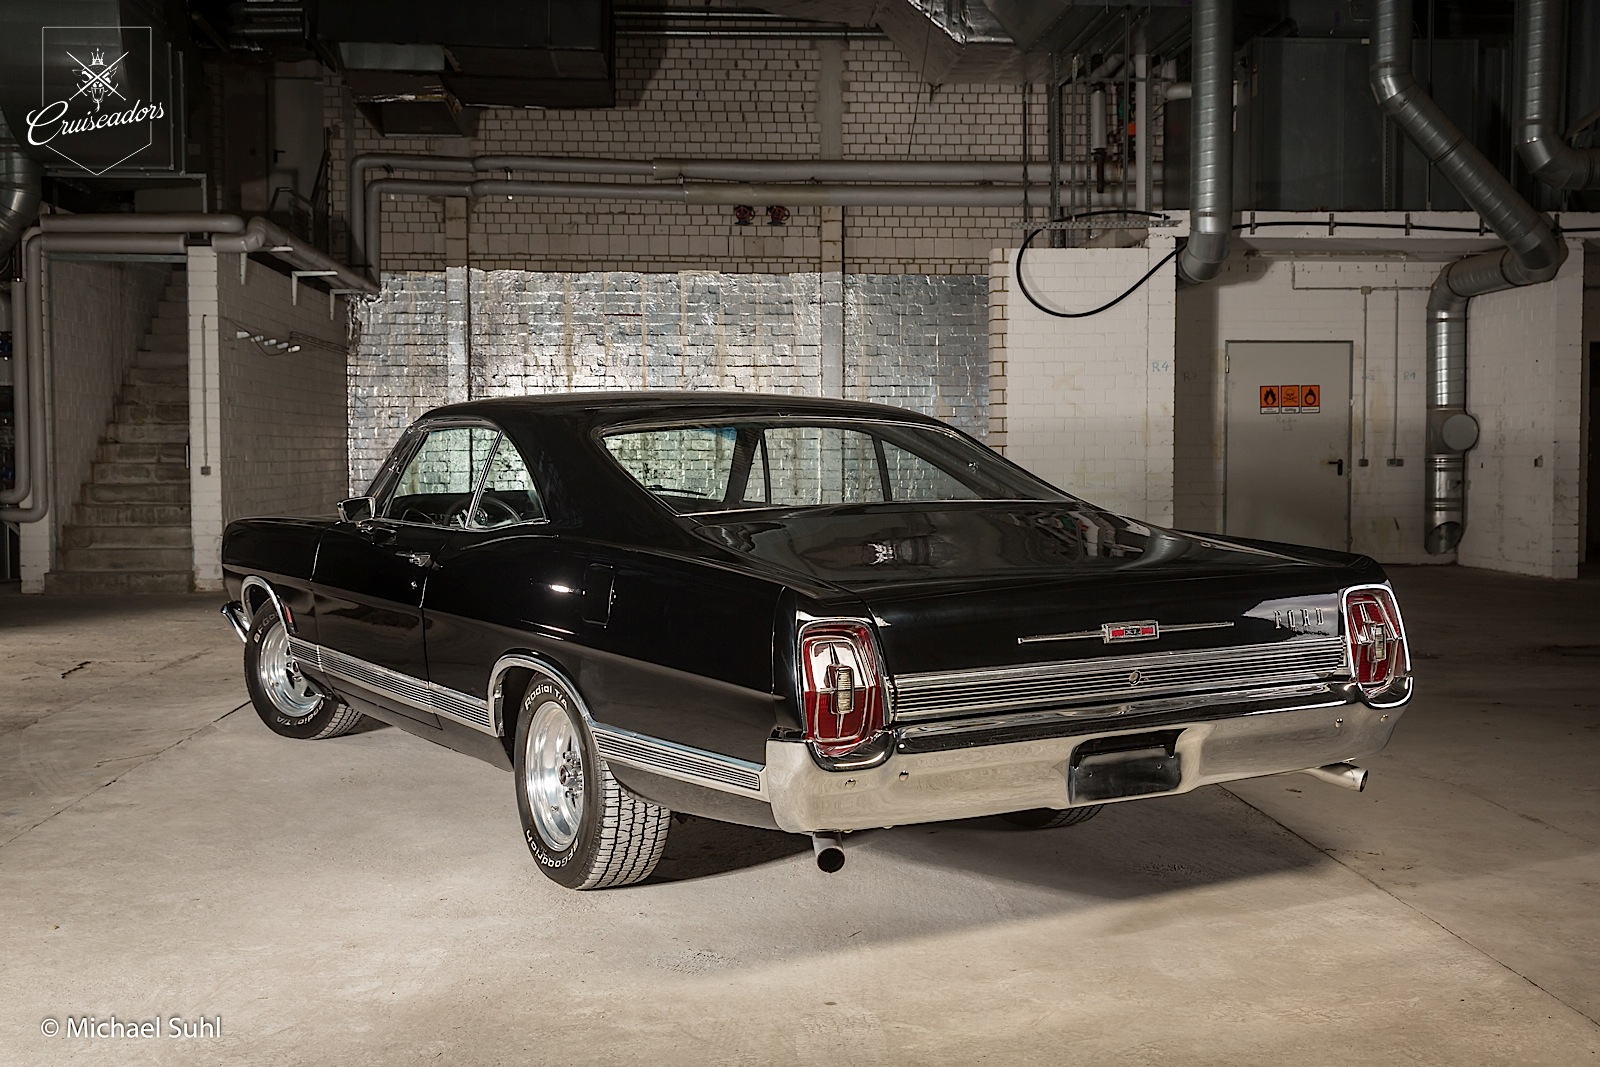 1967 ford galaxie 500x mieten kaufen berlin cruiseadors 9. Black Bedroom Furniture Sets. Home Design Ideas